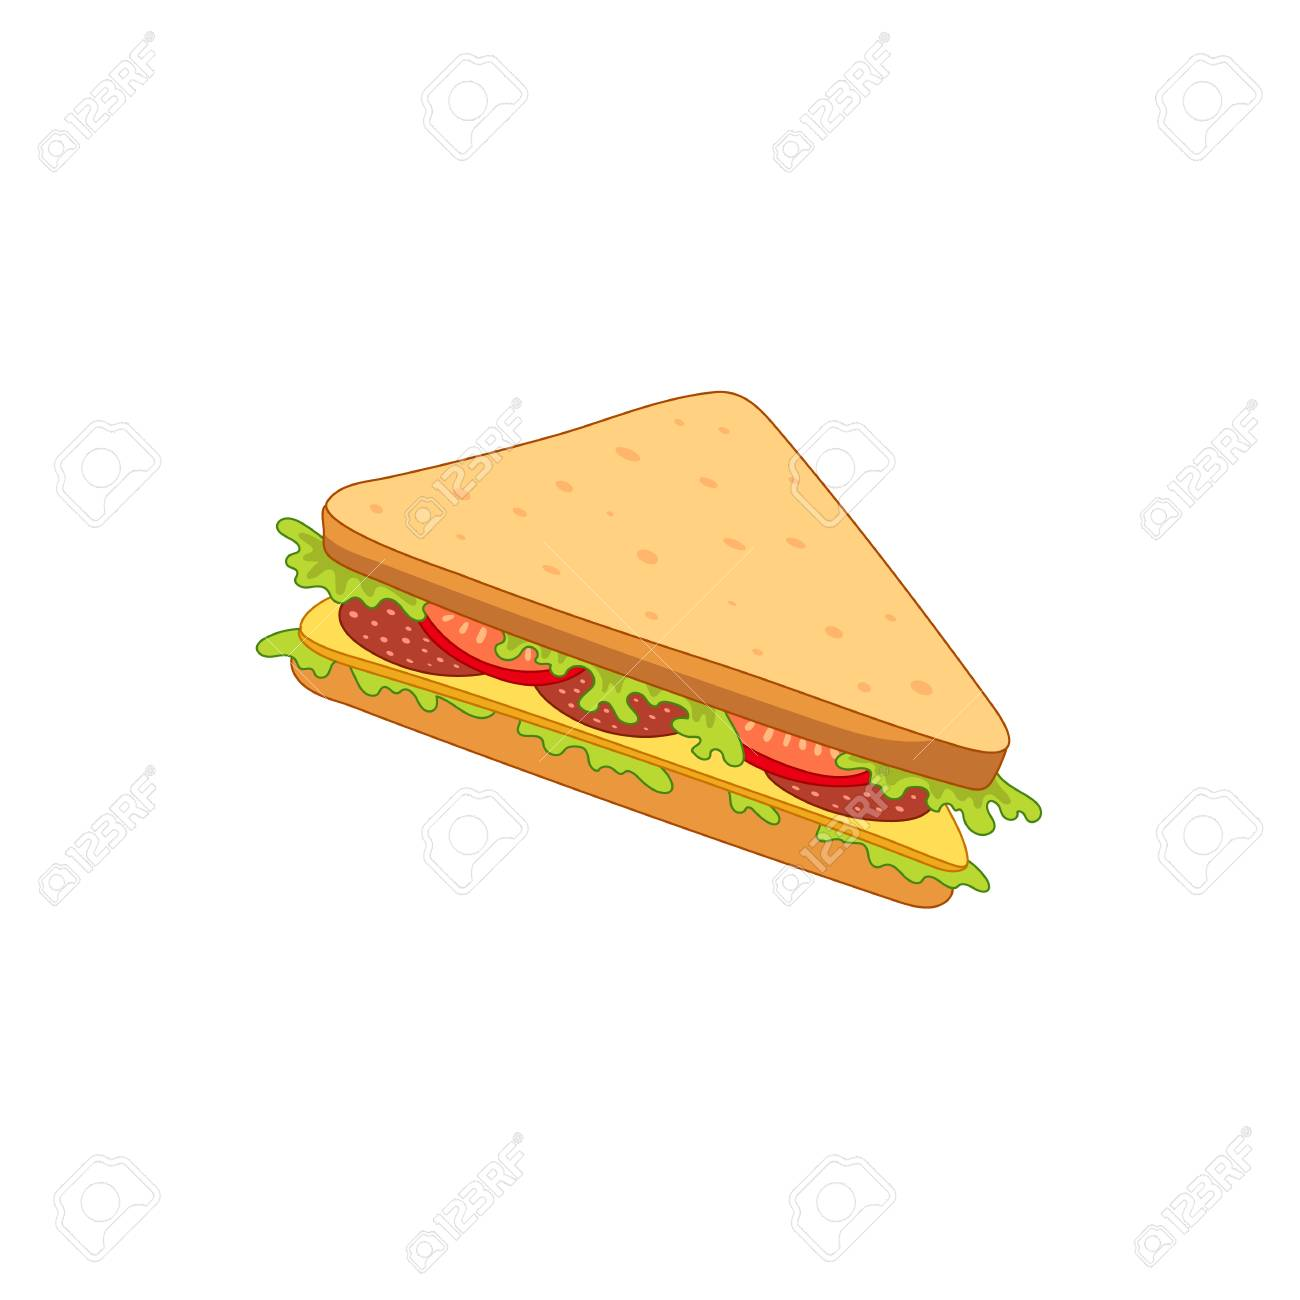 vector sandwich with vegetables fast food flat cartoon isolated royalty free cliparts vectors and stock illustration image 83141796 vector sandwich with vegetables fast food flat cartoon isolated